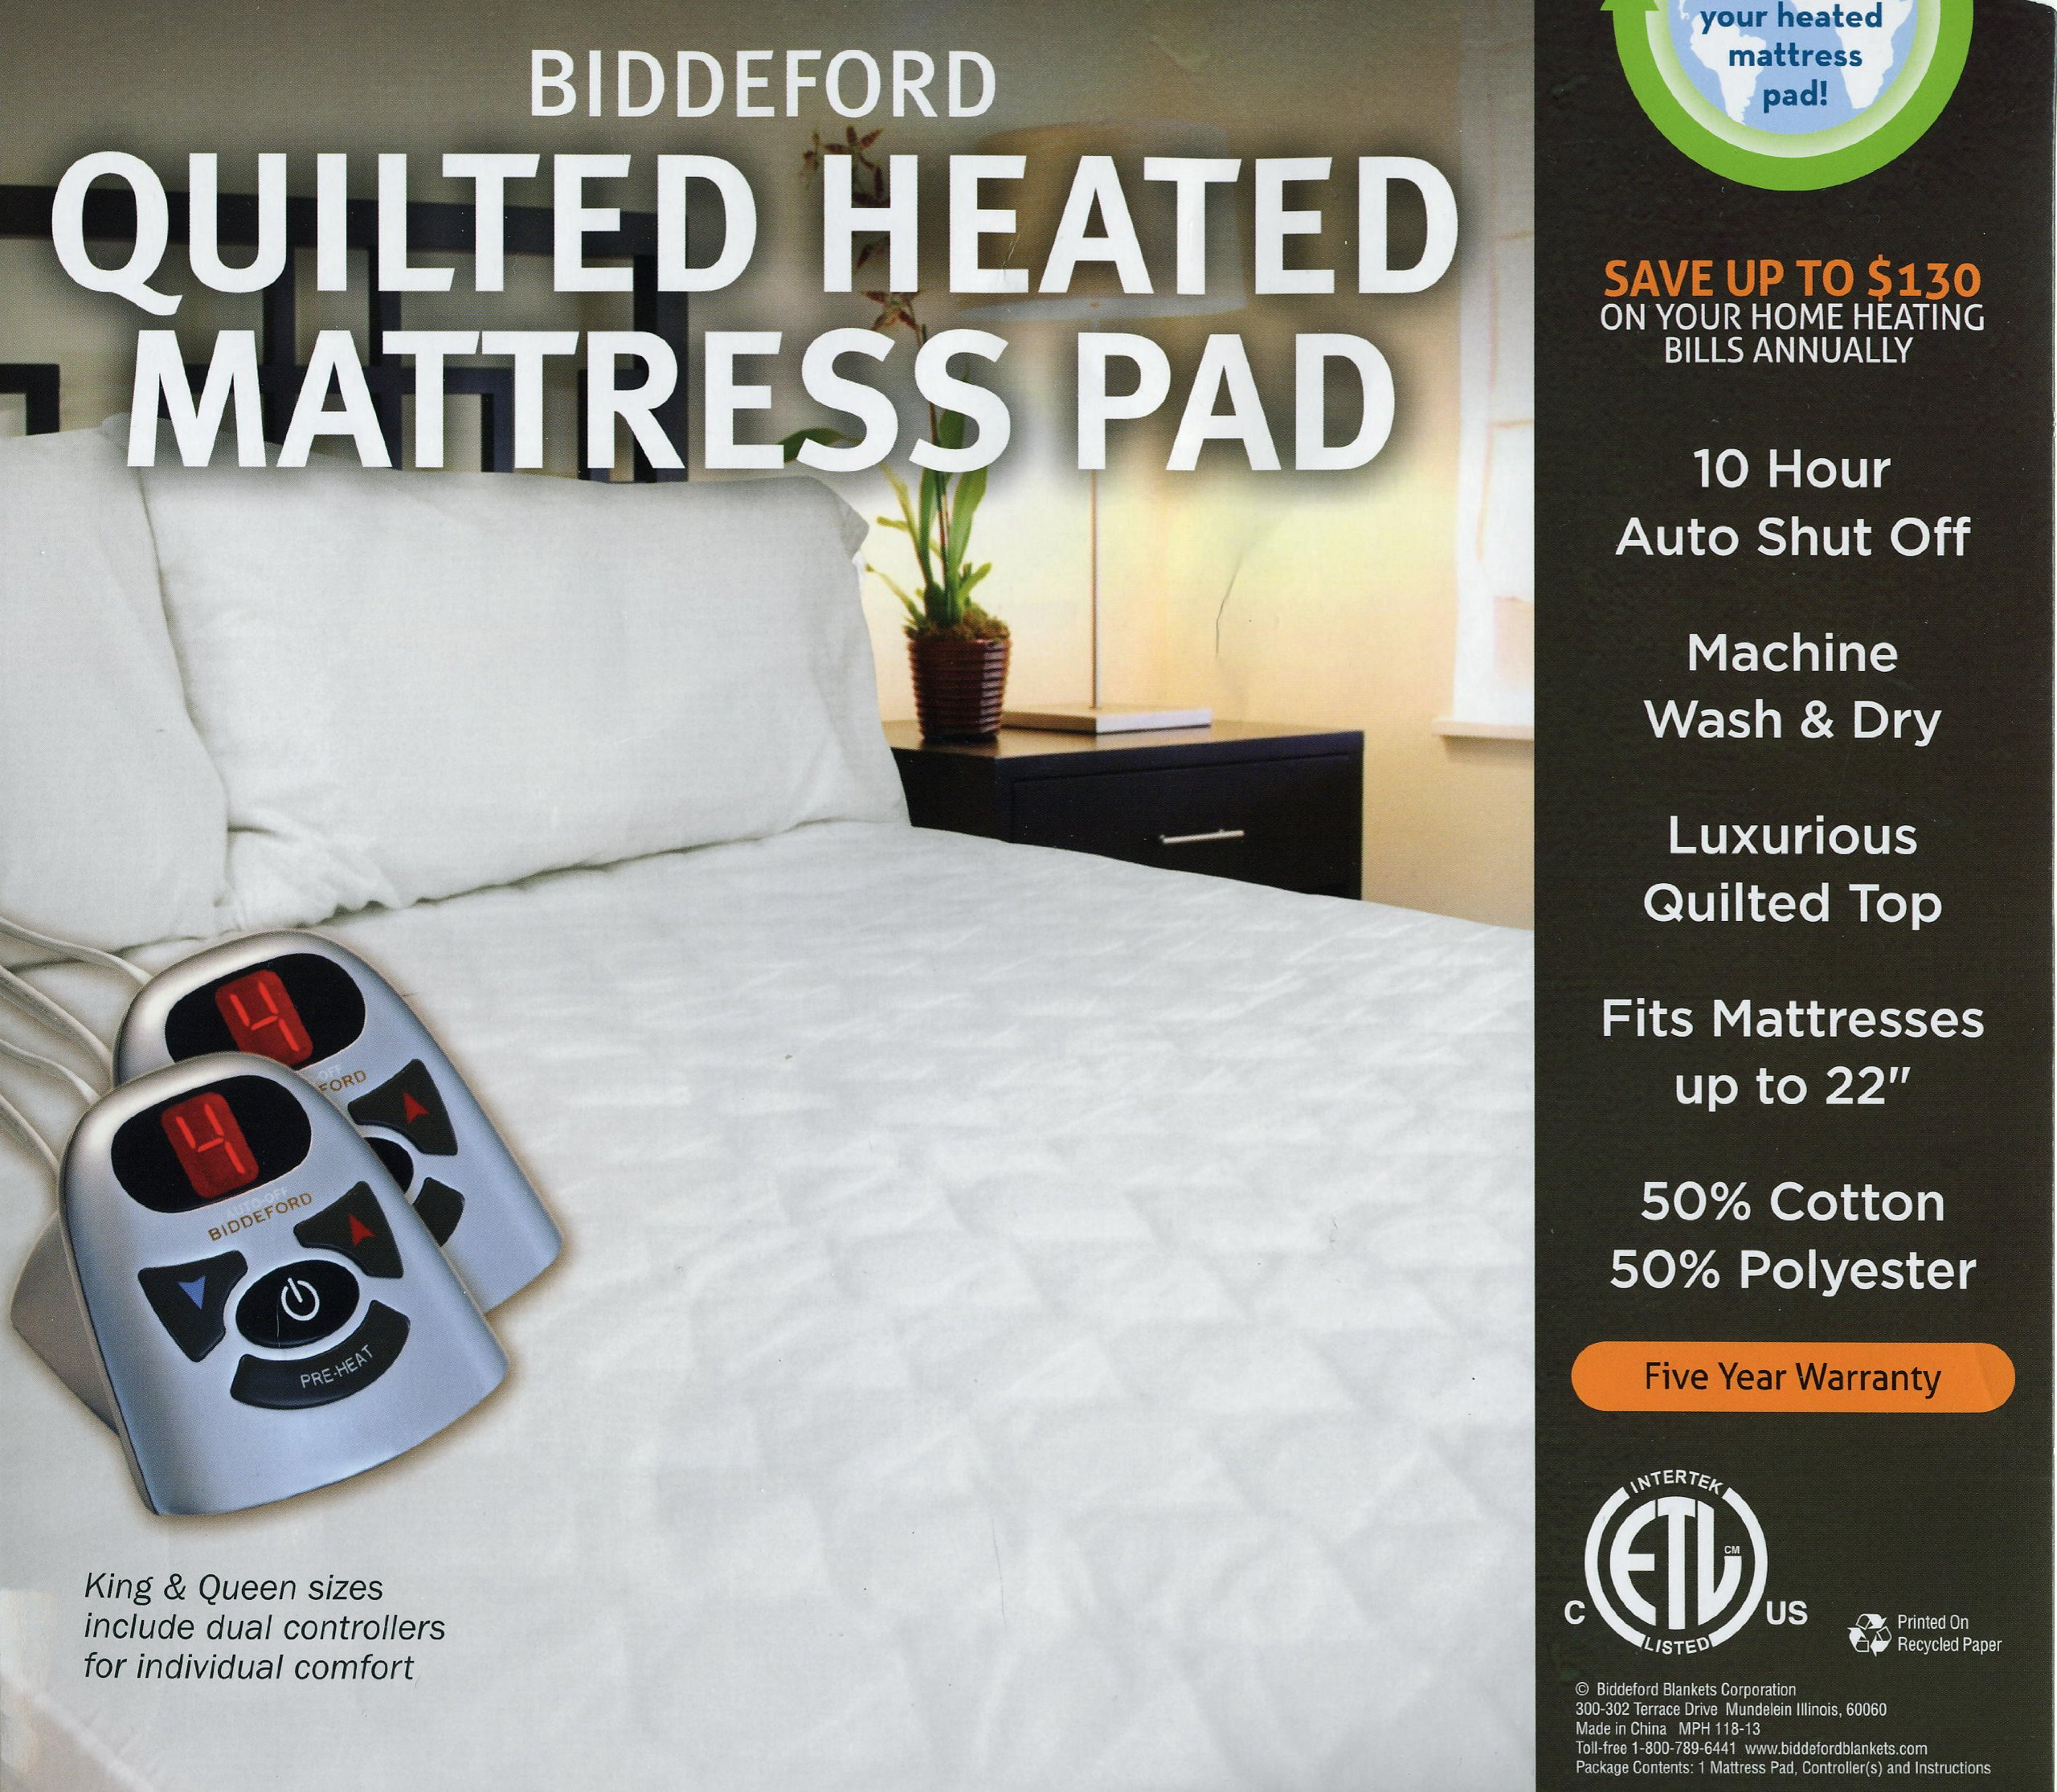 Biddeford Automatic Heated Quilted Mattress Pad White Color (1, Twin)